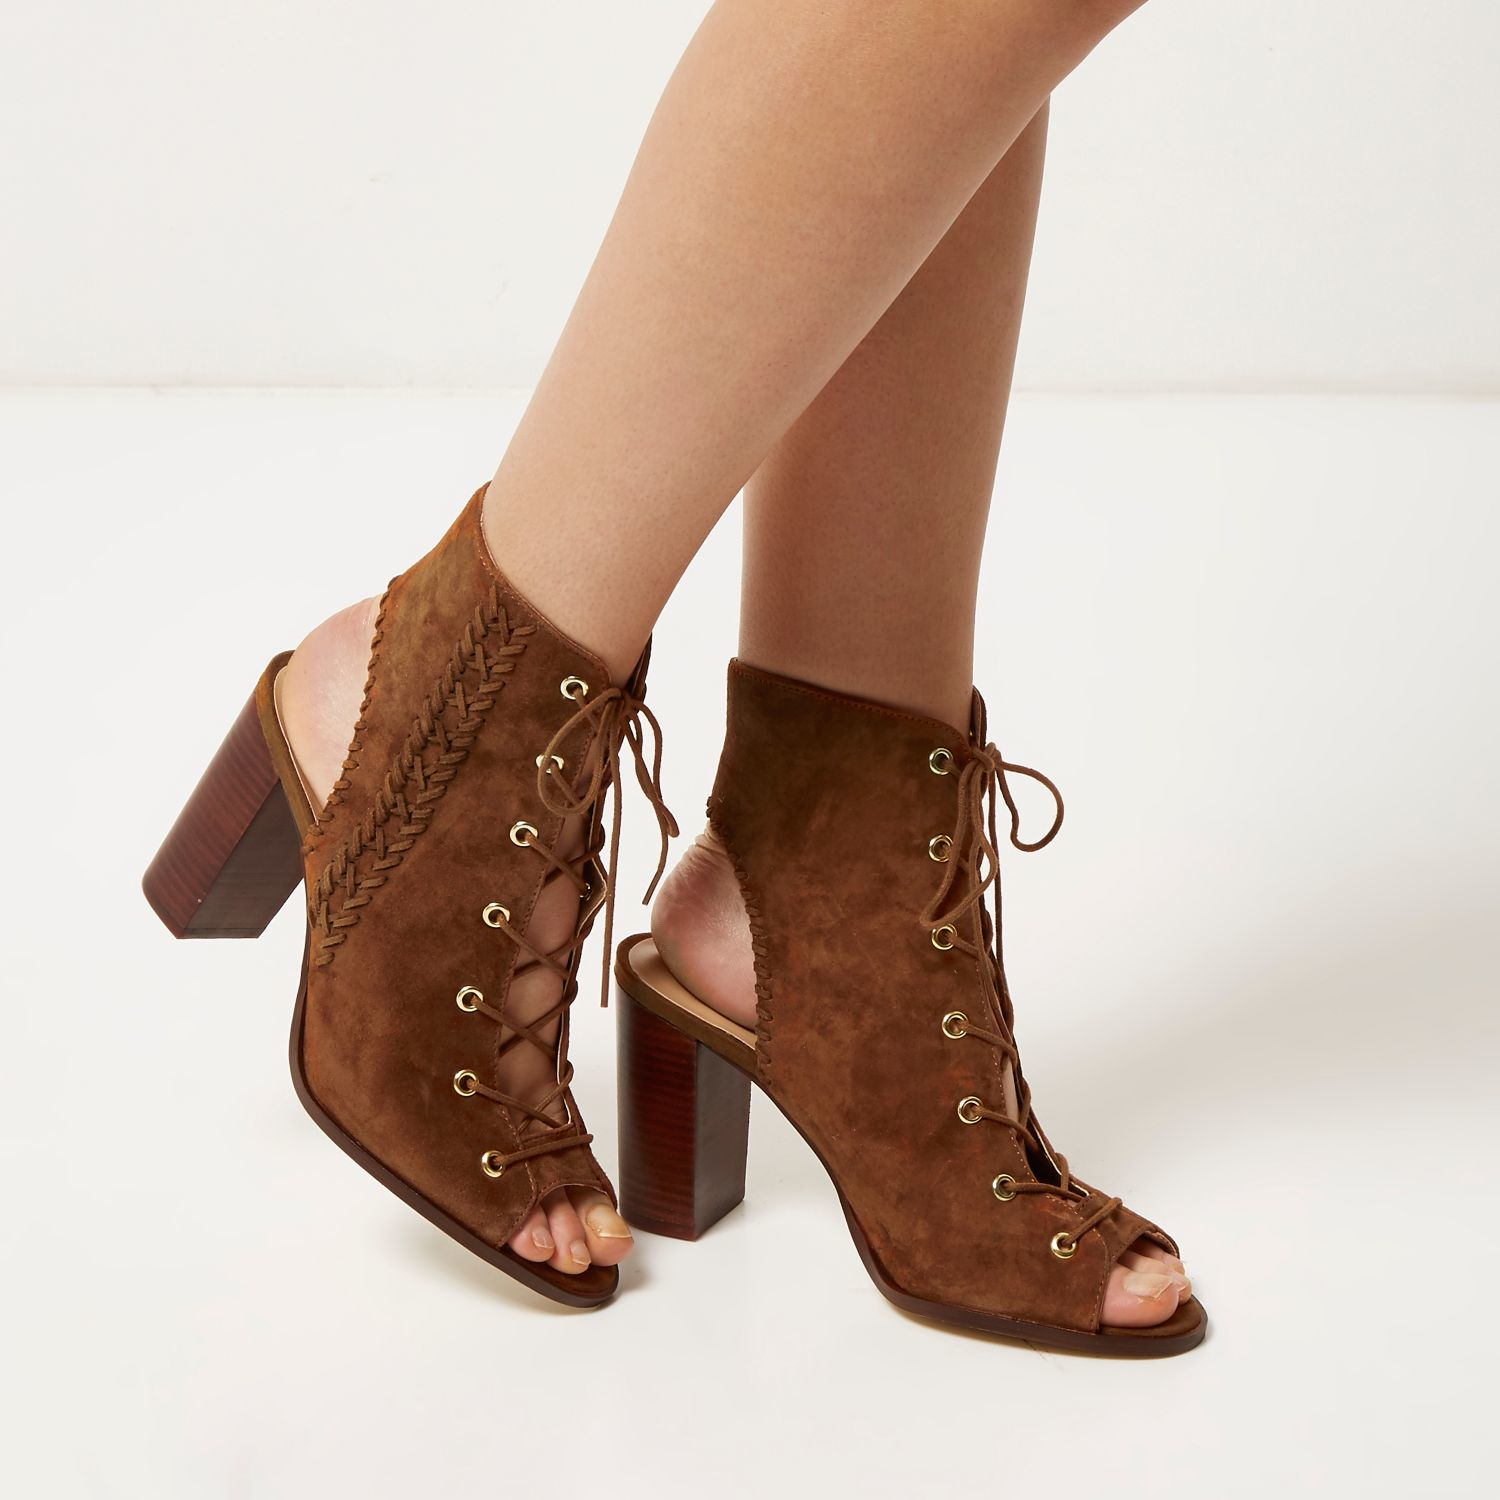 River Island Lace-up boots - brown 0truoS4Pz